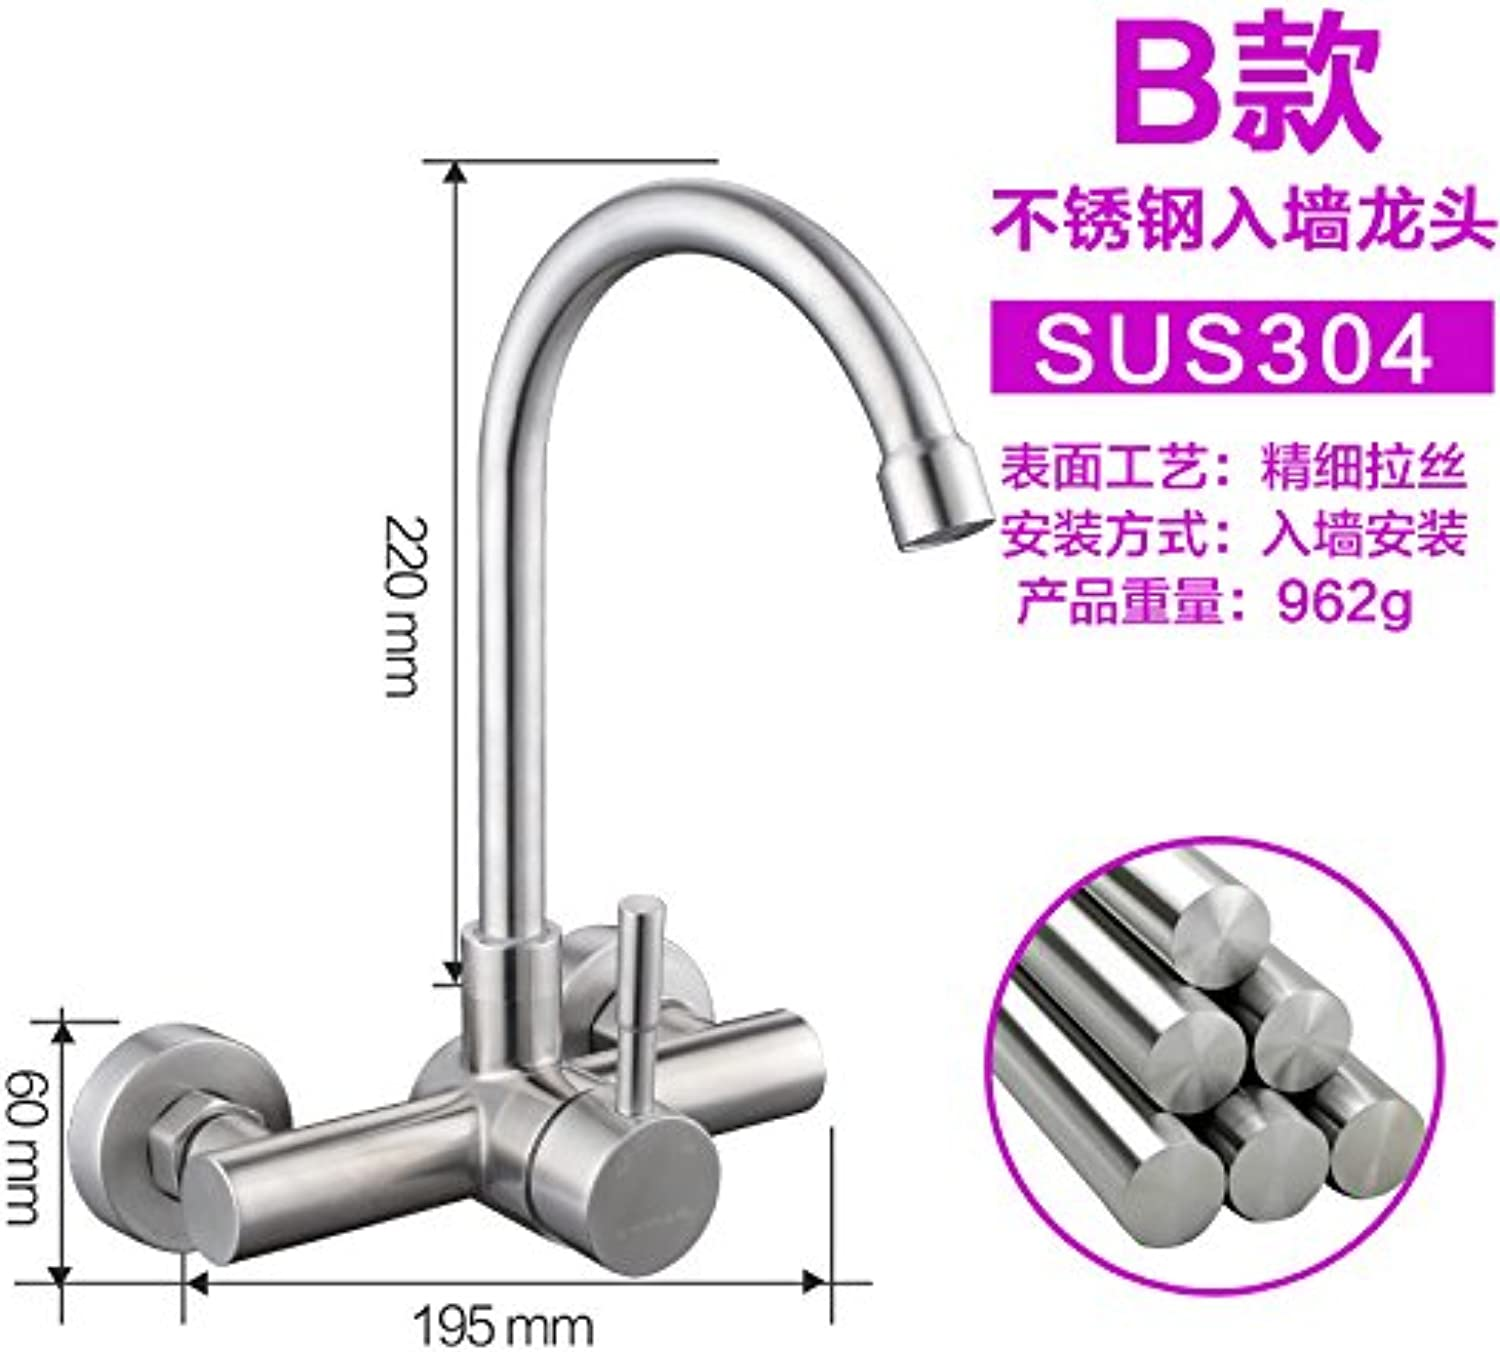 ETERNAL QUALITY Bathroom Sink Basin Tap Brass Mixer Tap Washroom Mixer Faucet 304 Stainless Steel hot and cold INTO THE WALL MOUNTED KITCHEN FAUCET kitchen sink laundry p